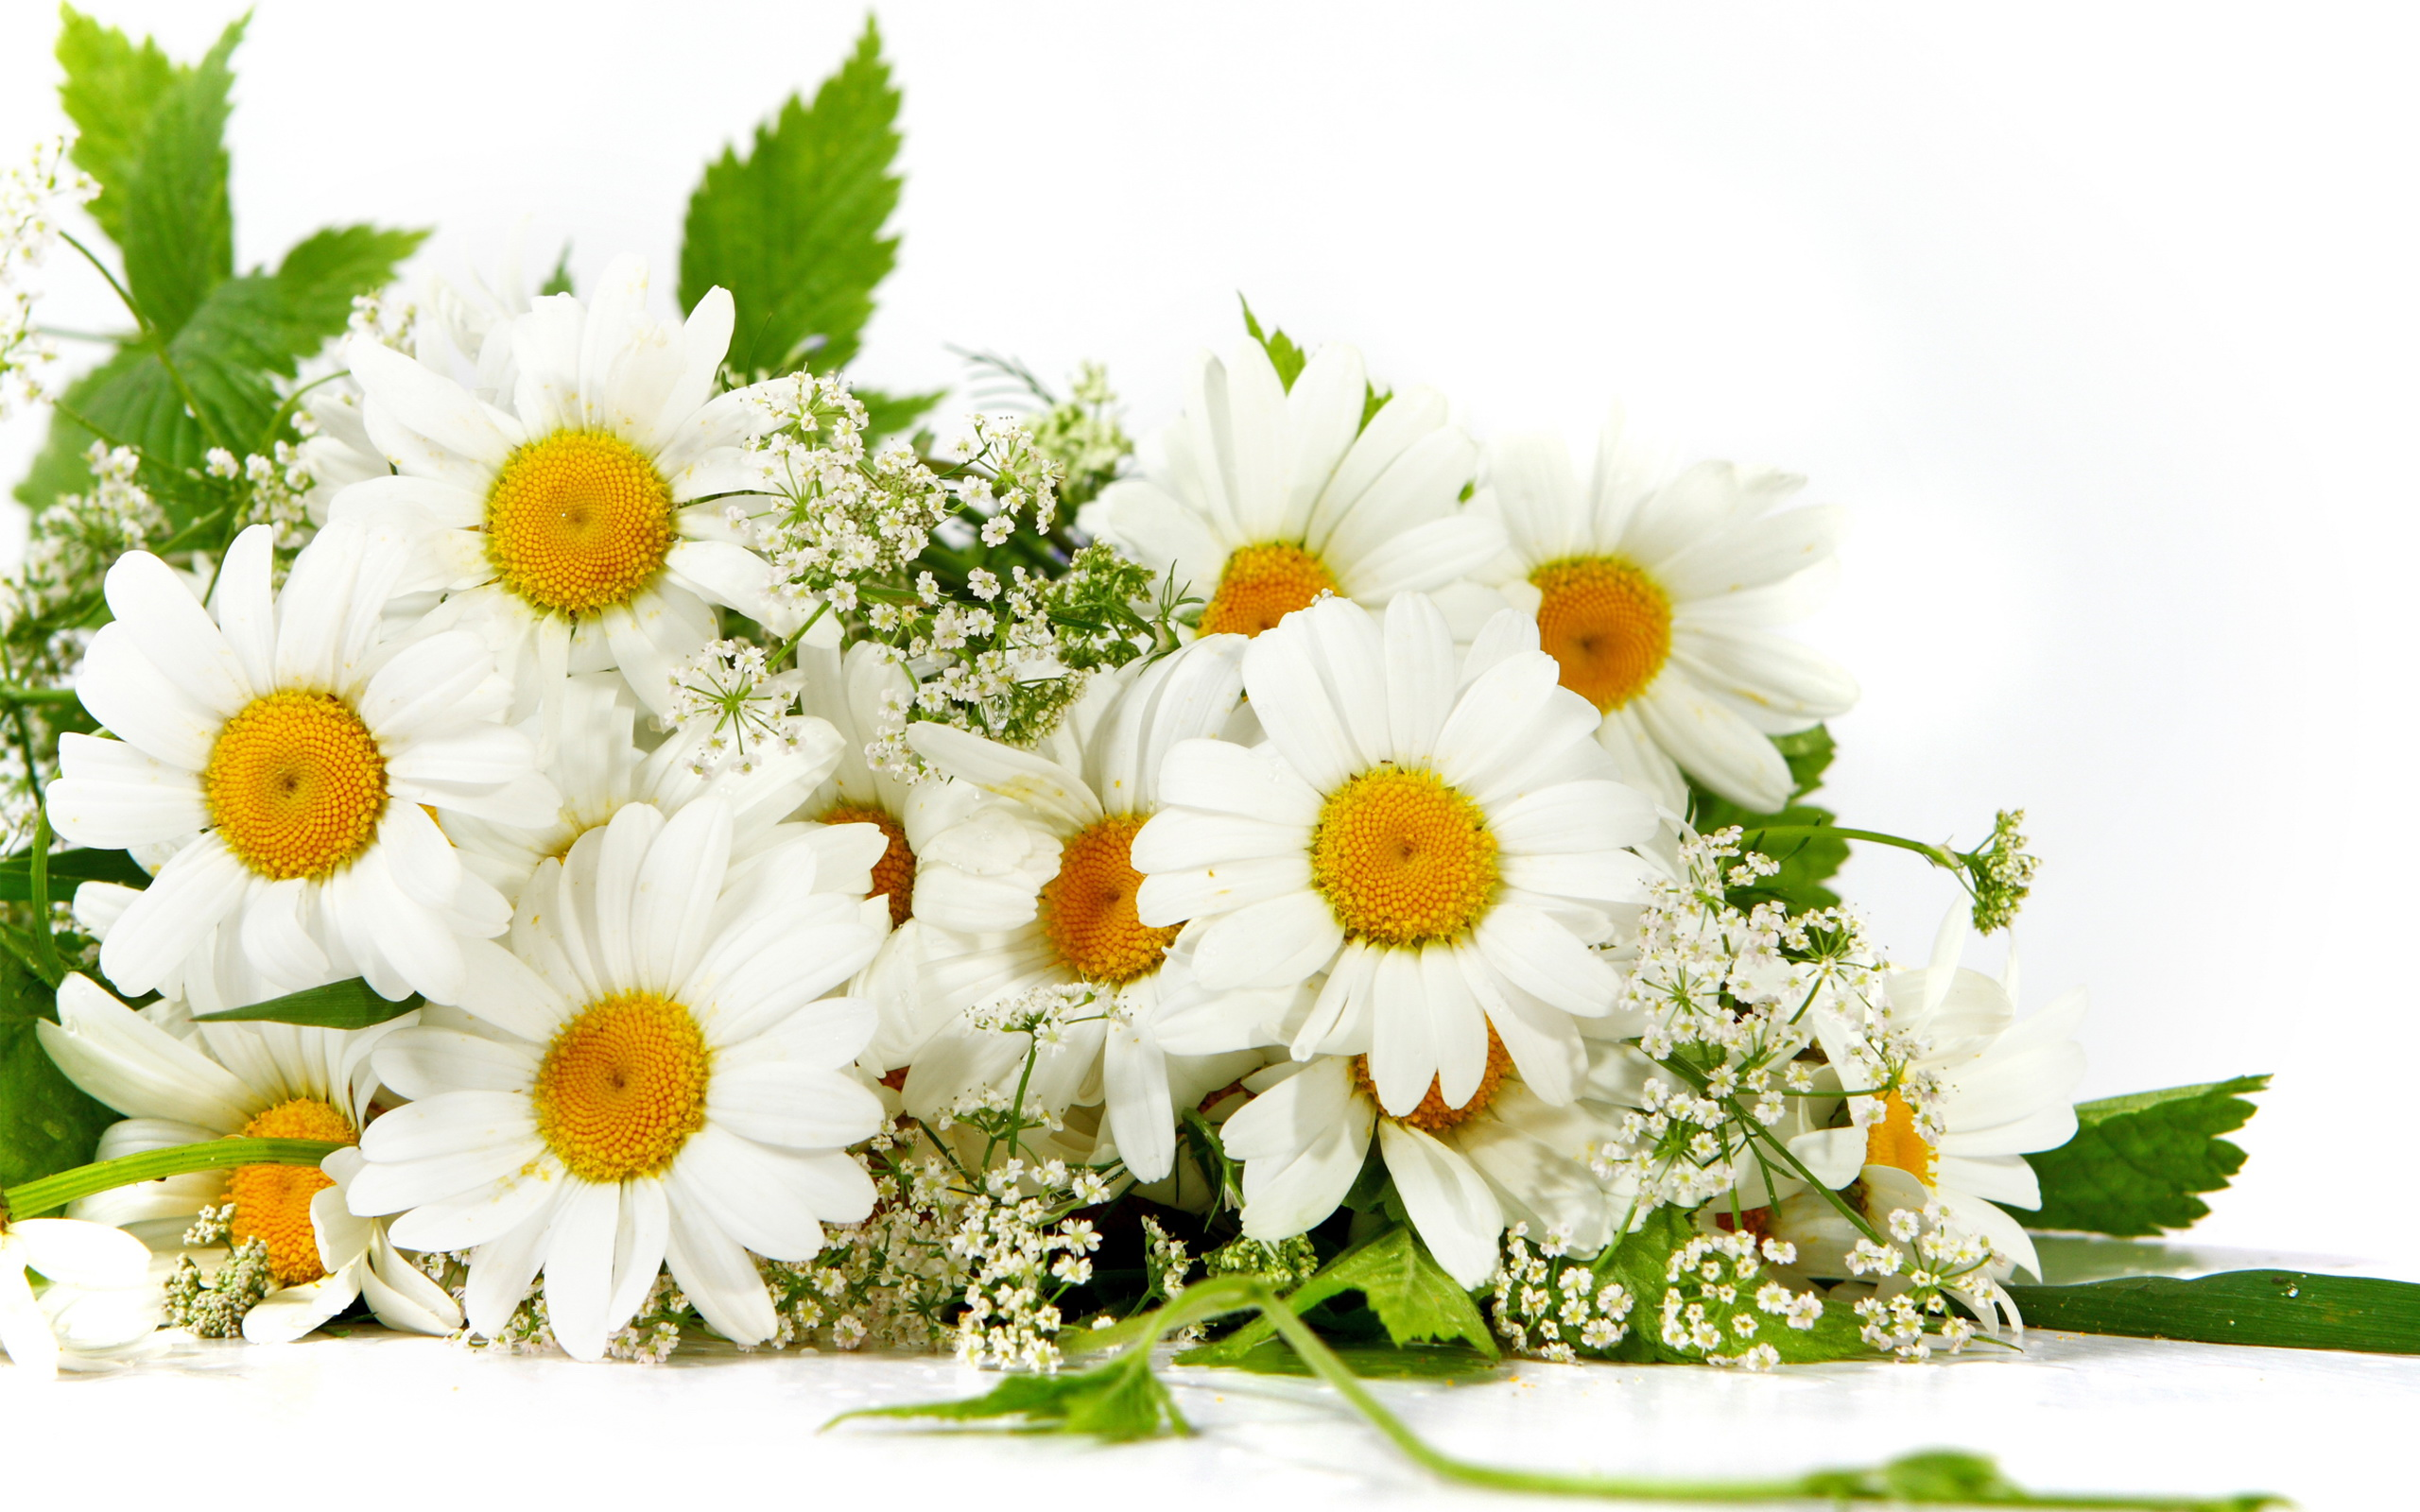 Bouquet Of Flowers Images Background 2 HD Wallpapers